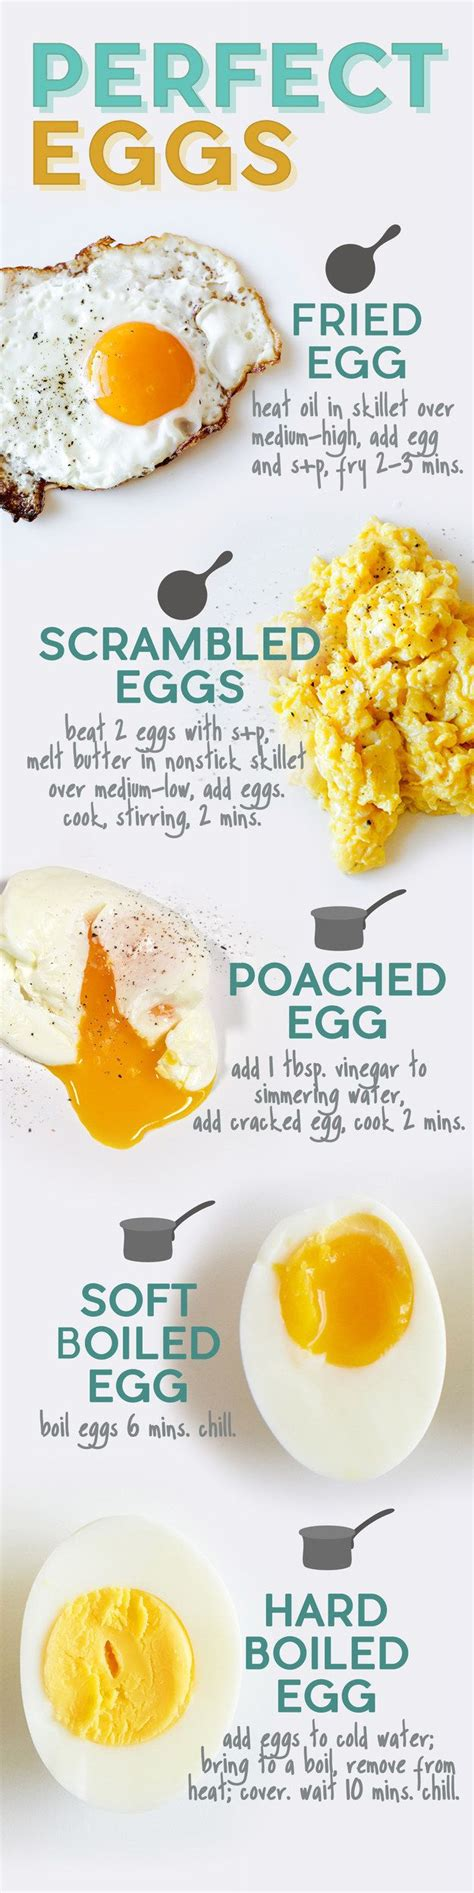 25 best ideas about ways to cook eggs on pinterest cooking eggs how to cook eggs and egg